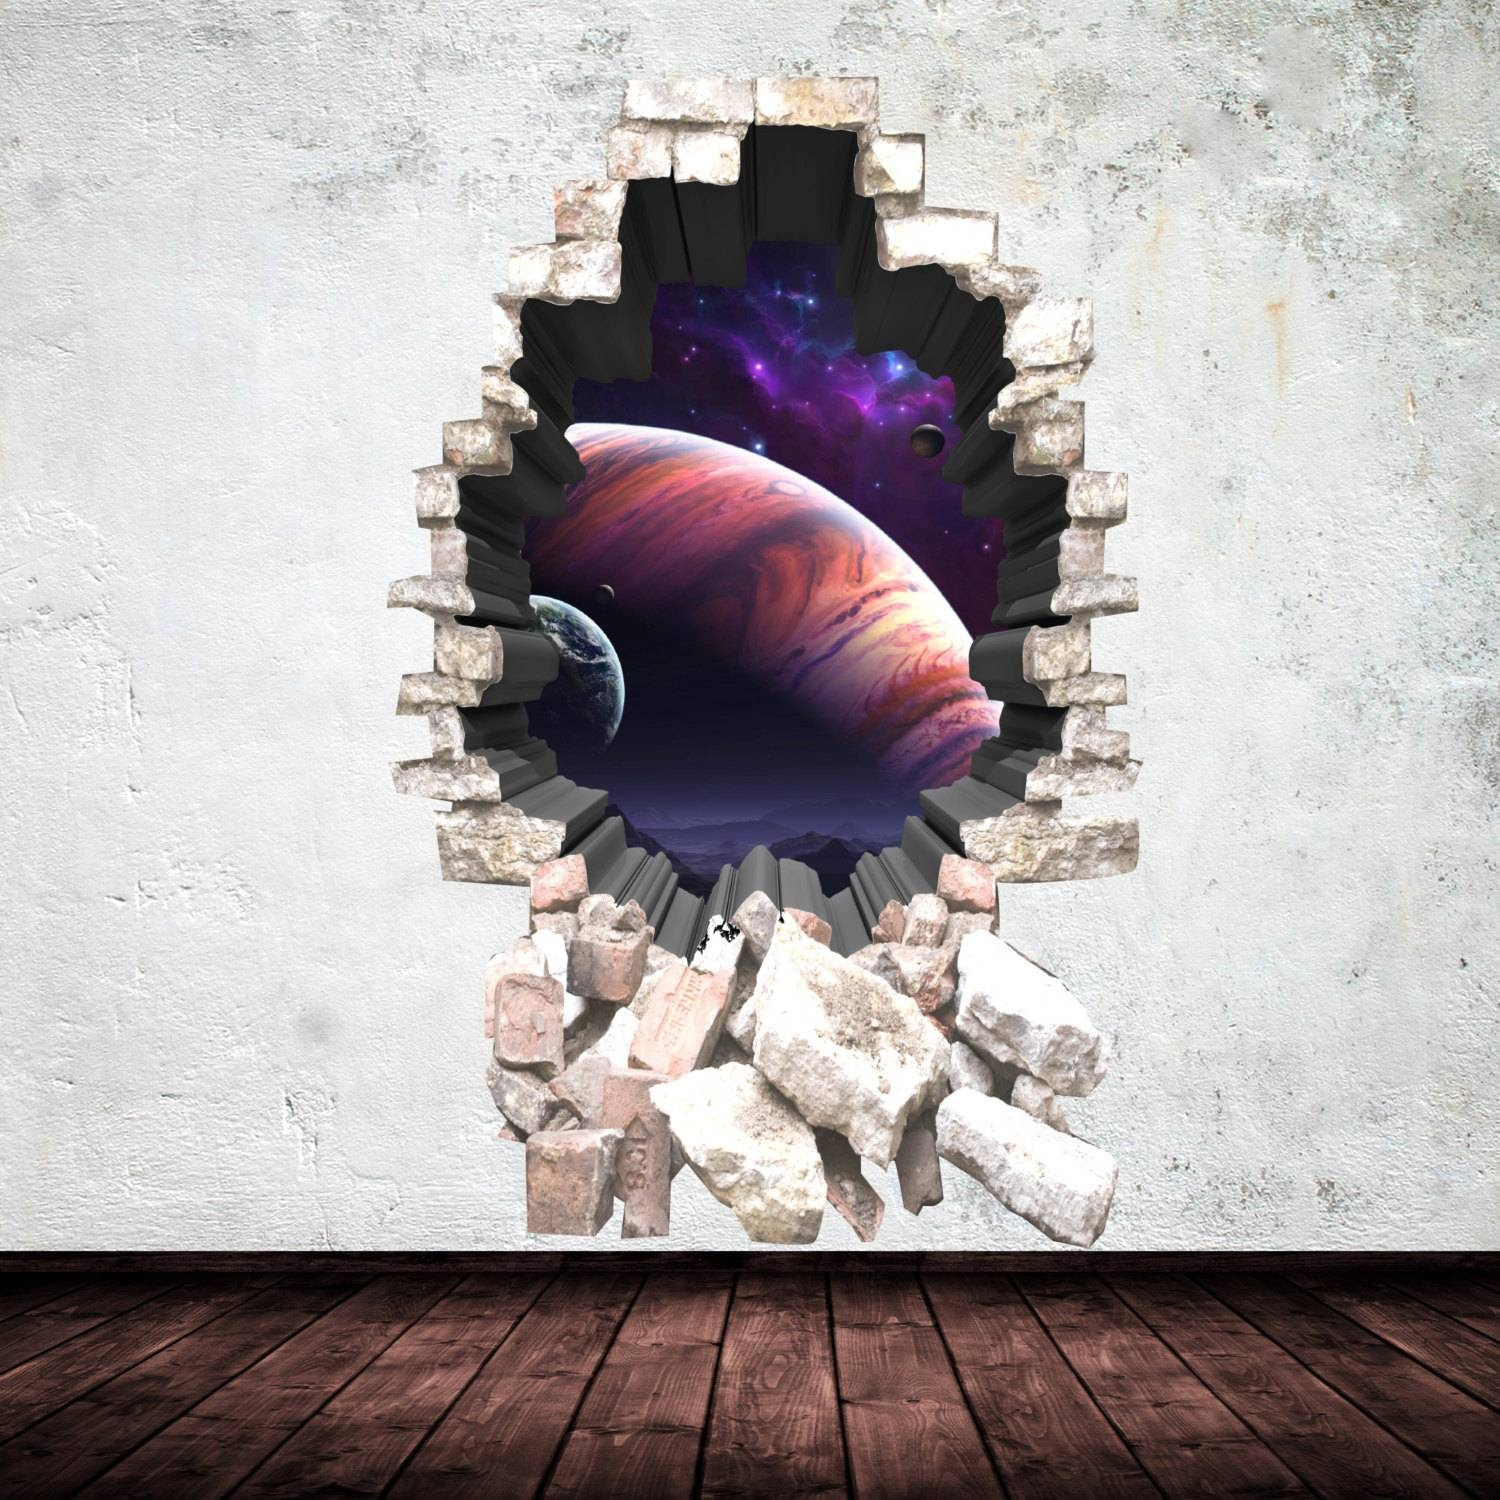 3d Deep Space Planets Wall Art Sticker Boy Decal Mural Graphic Intended For Most Recently Released 3d Brick Wall Art (Gallery 16 of 20)